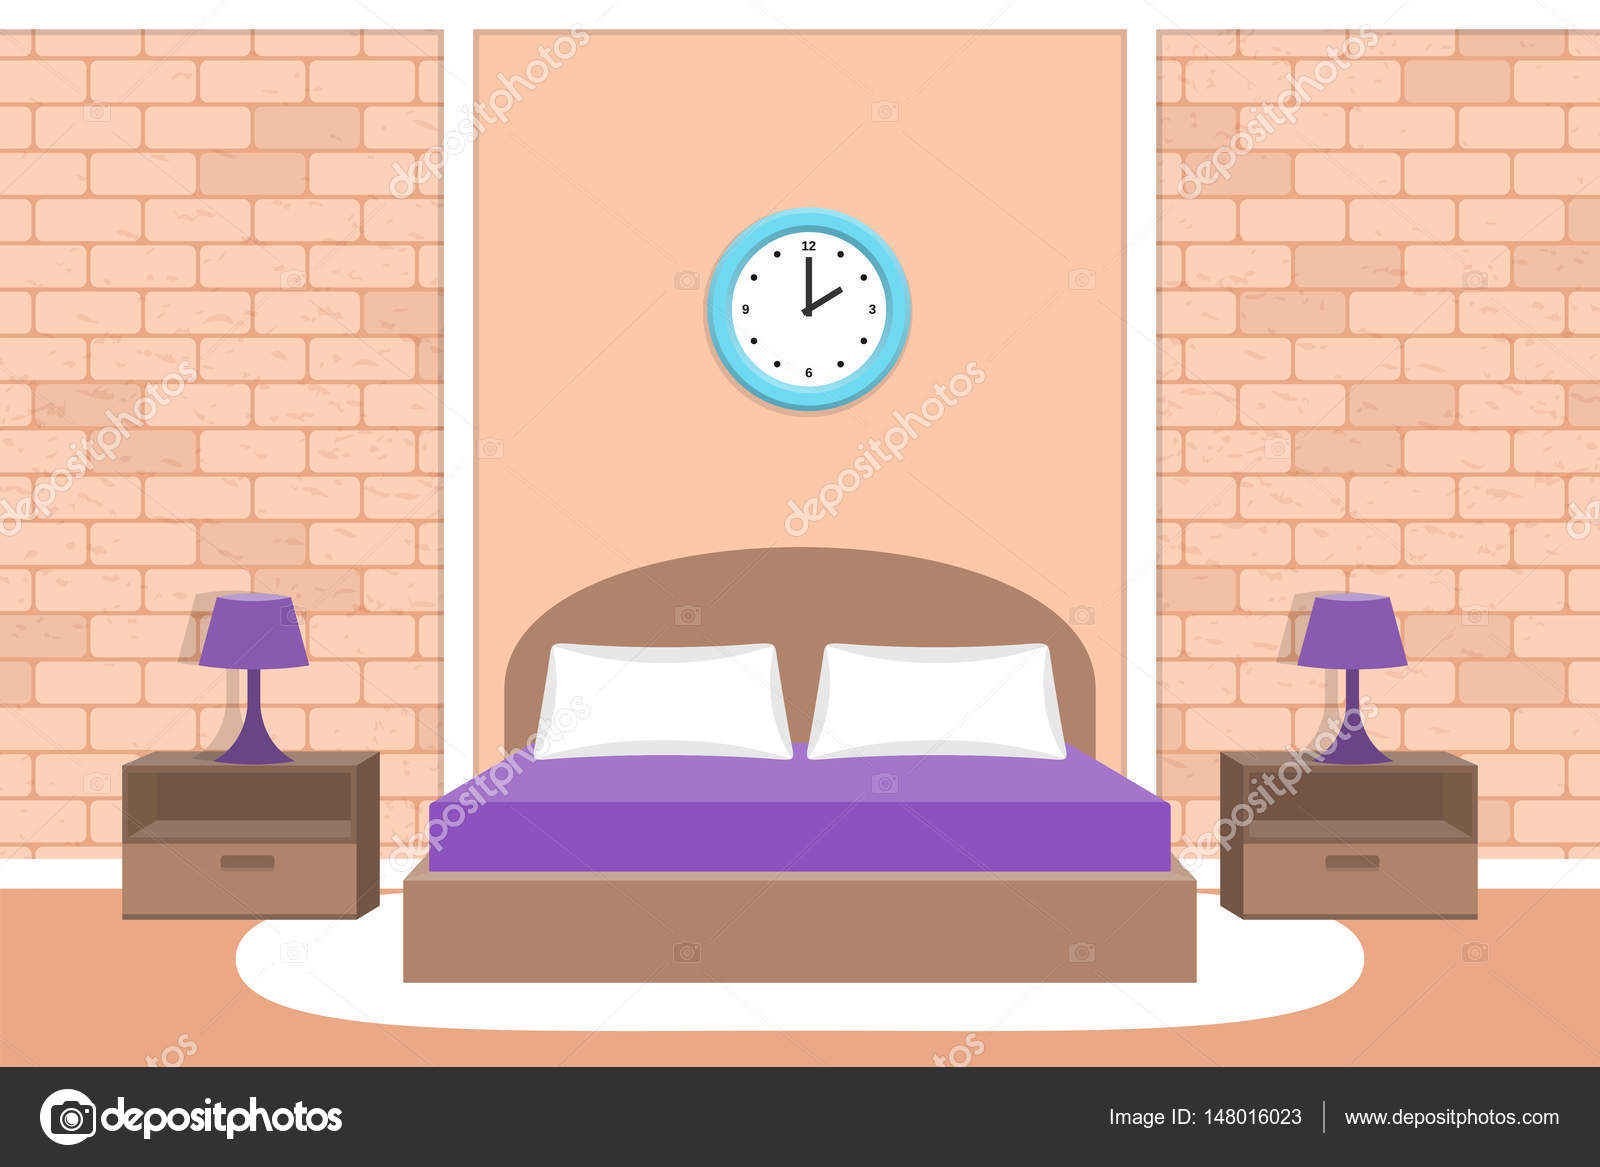 Bedroom design. Room interior Vector illustration. Background wi 11